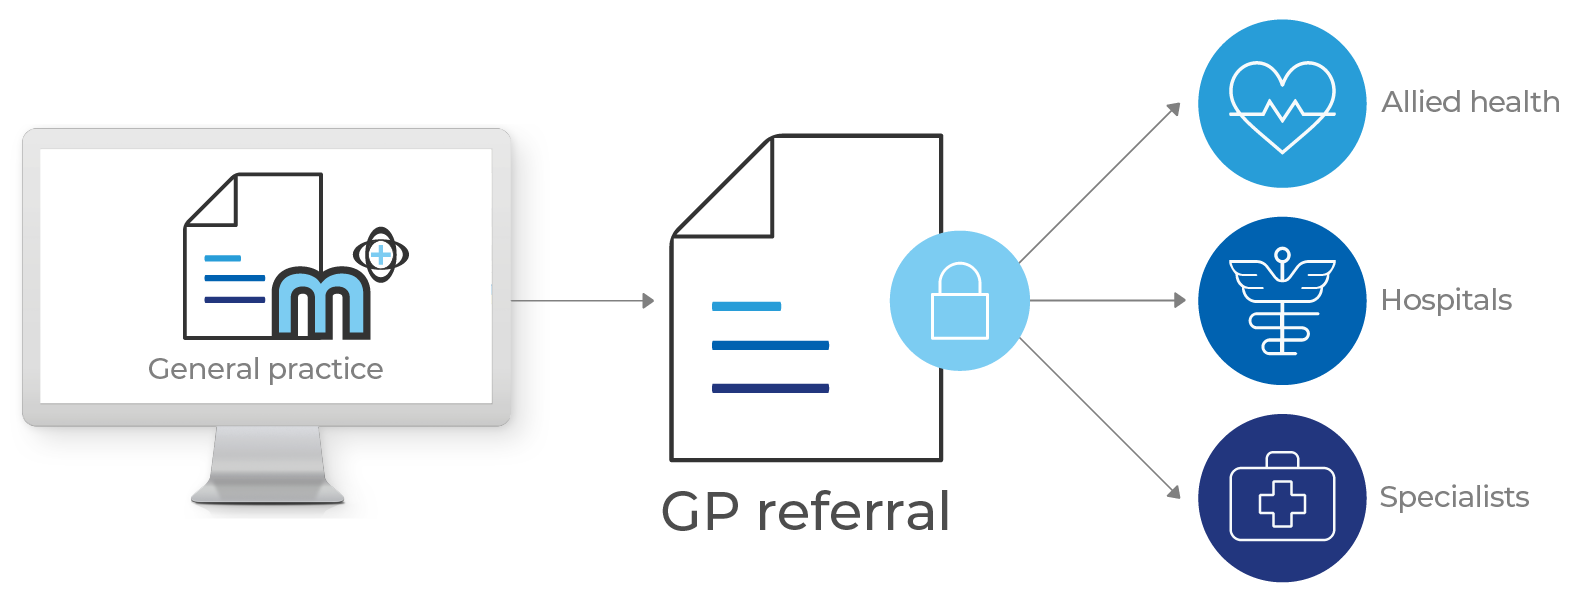 Medical-Objects Referral Client Infographic